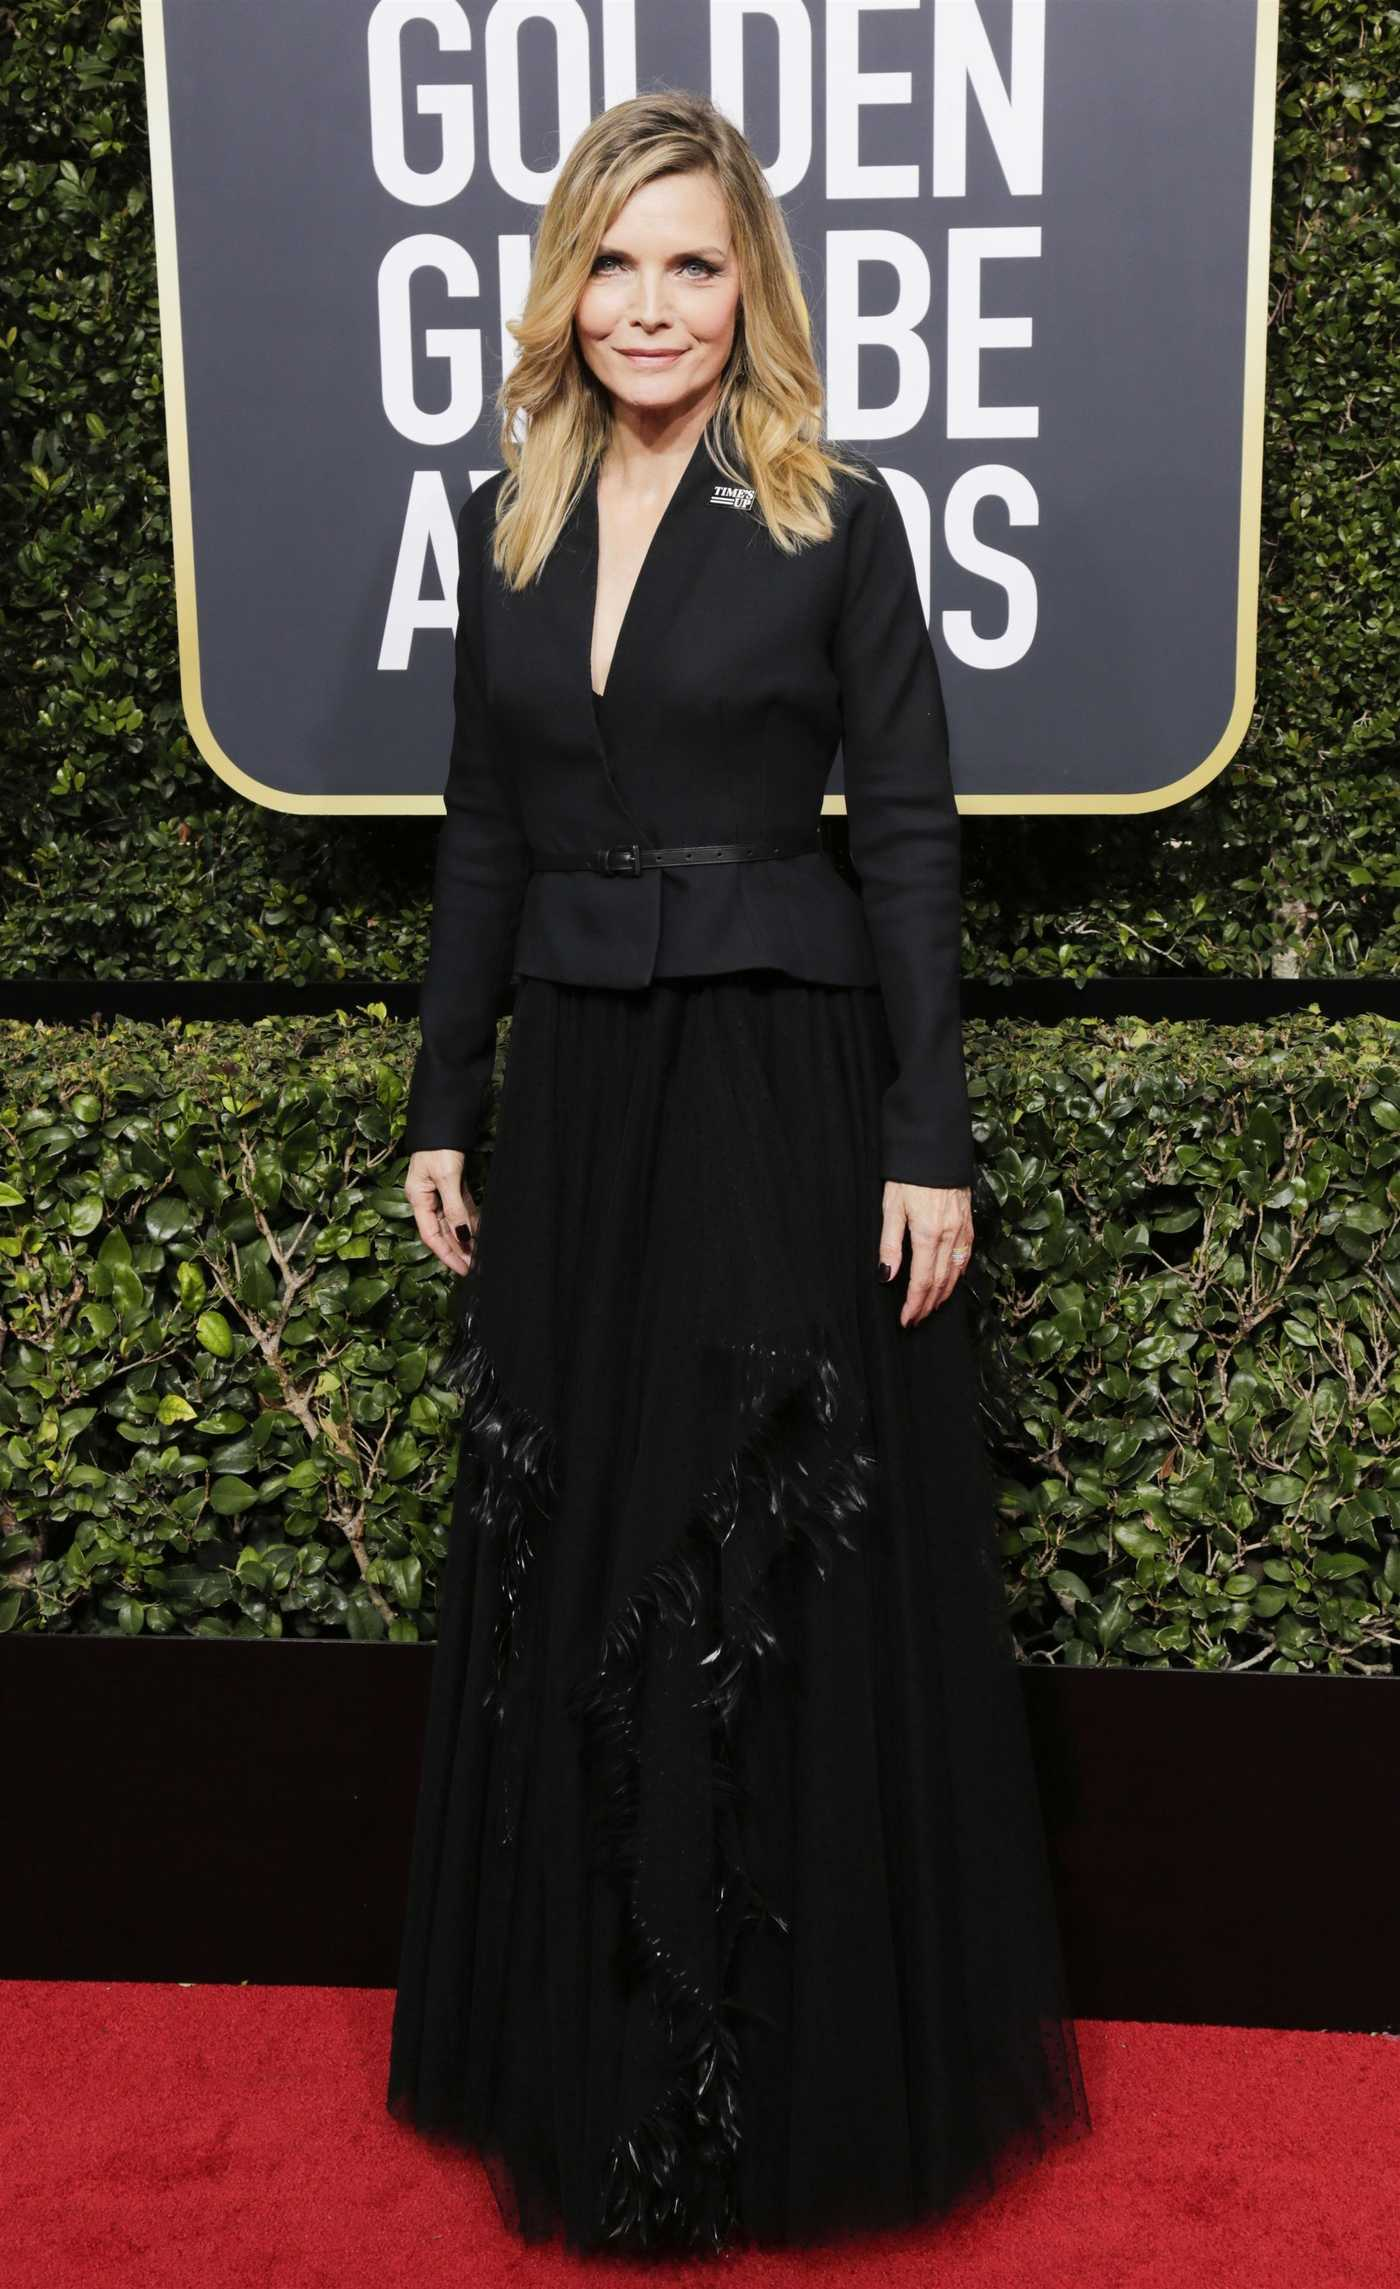 Michelle Pfeiffer at the 75th Annual Golden Globe Awards in Beverly Hills 01/07/2018